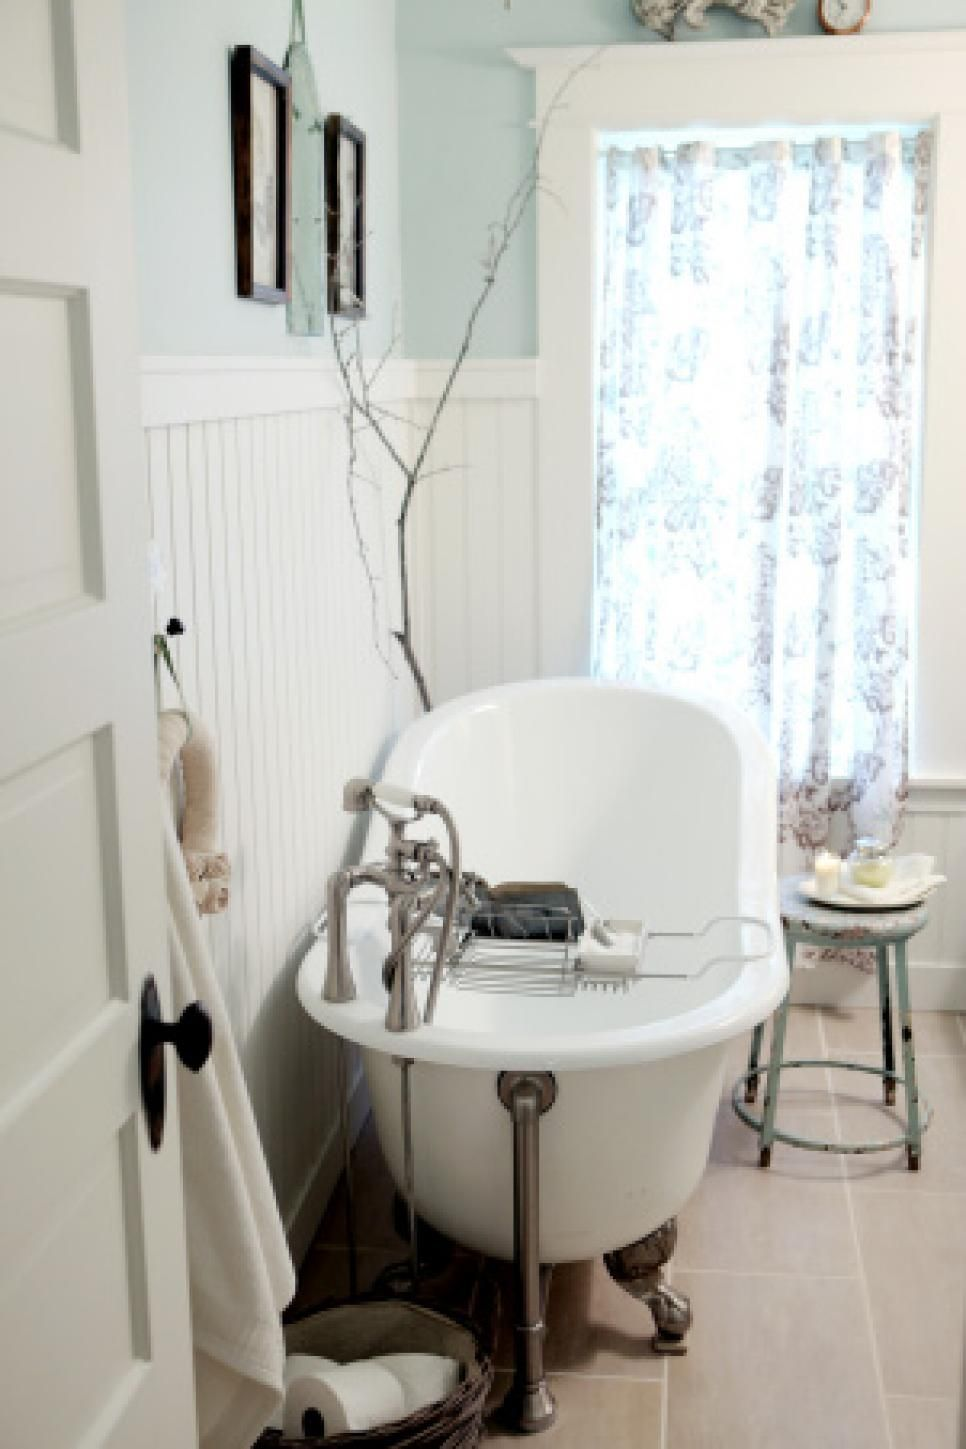 Budget Bathroom Remodels  Remodeling Ideas Hgtv And Budget Mesmerizing Updating A Small Bathroom On A Budget Design Inspiration